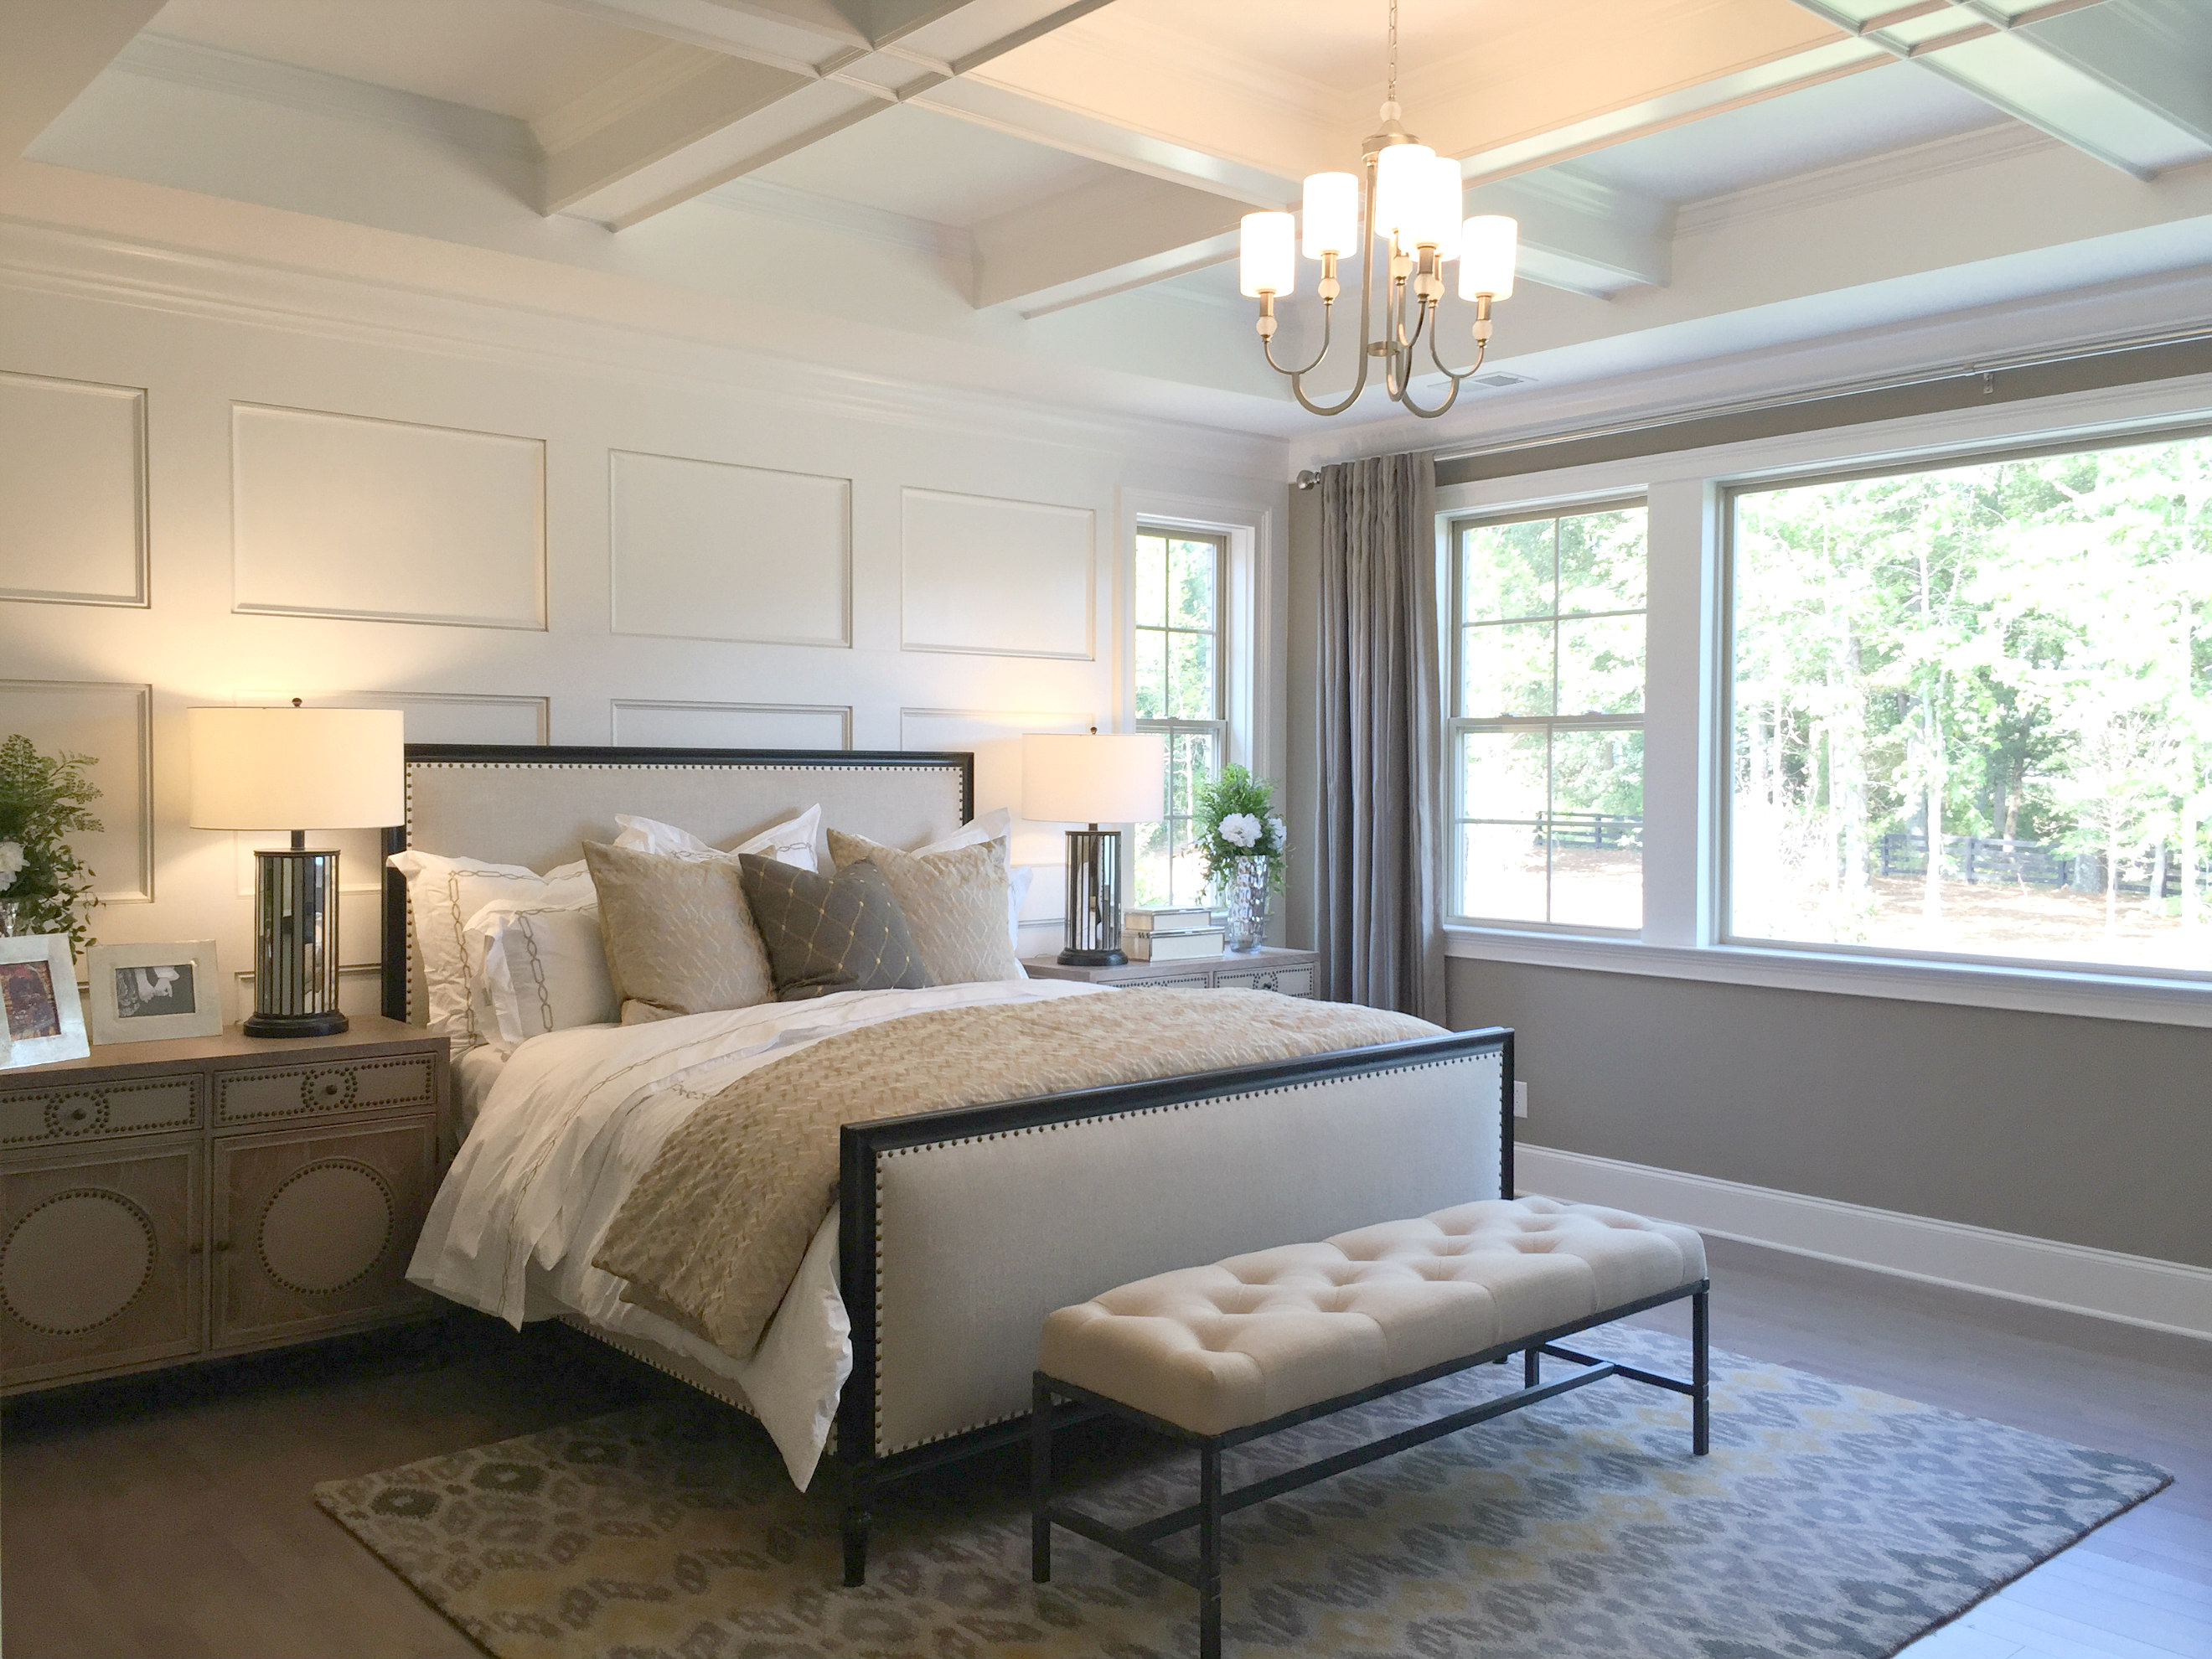 Palermo Model Home - Weddington Waxhaw Homes on Model Bedroom Ideas  id=96328